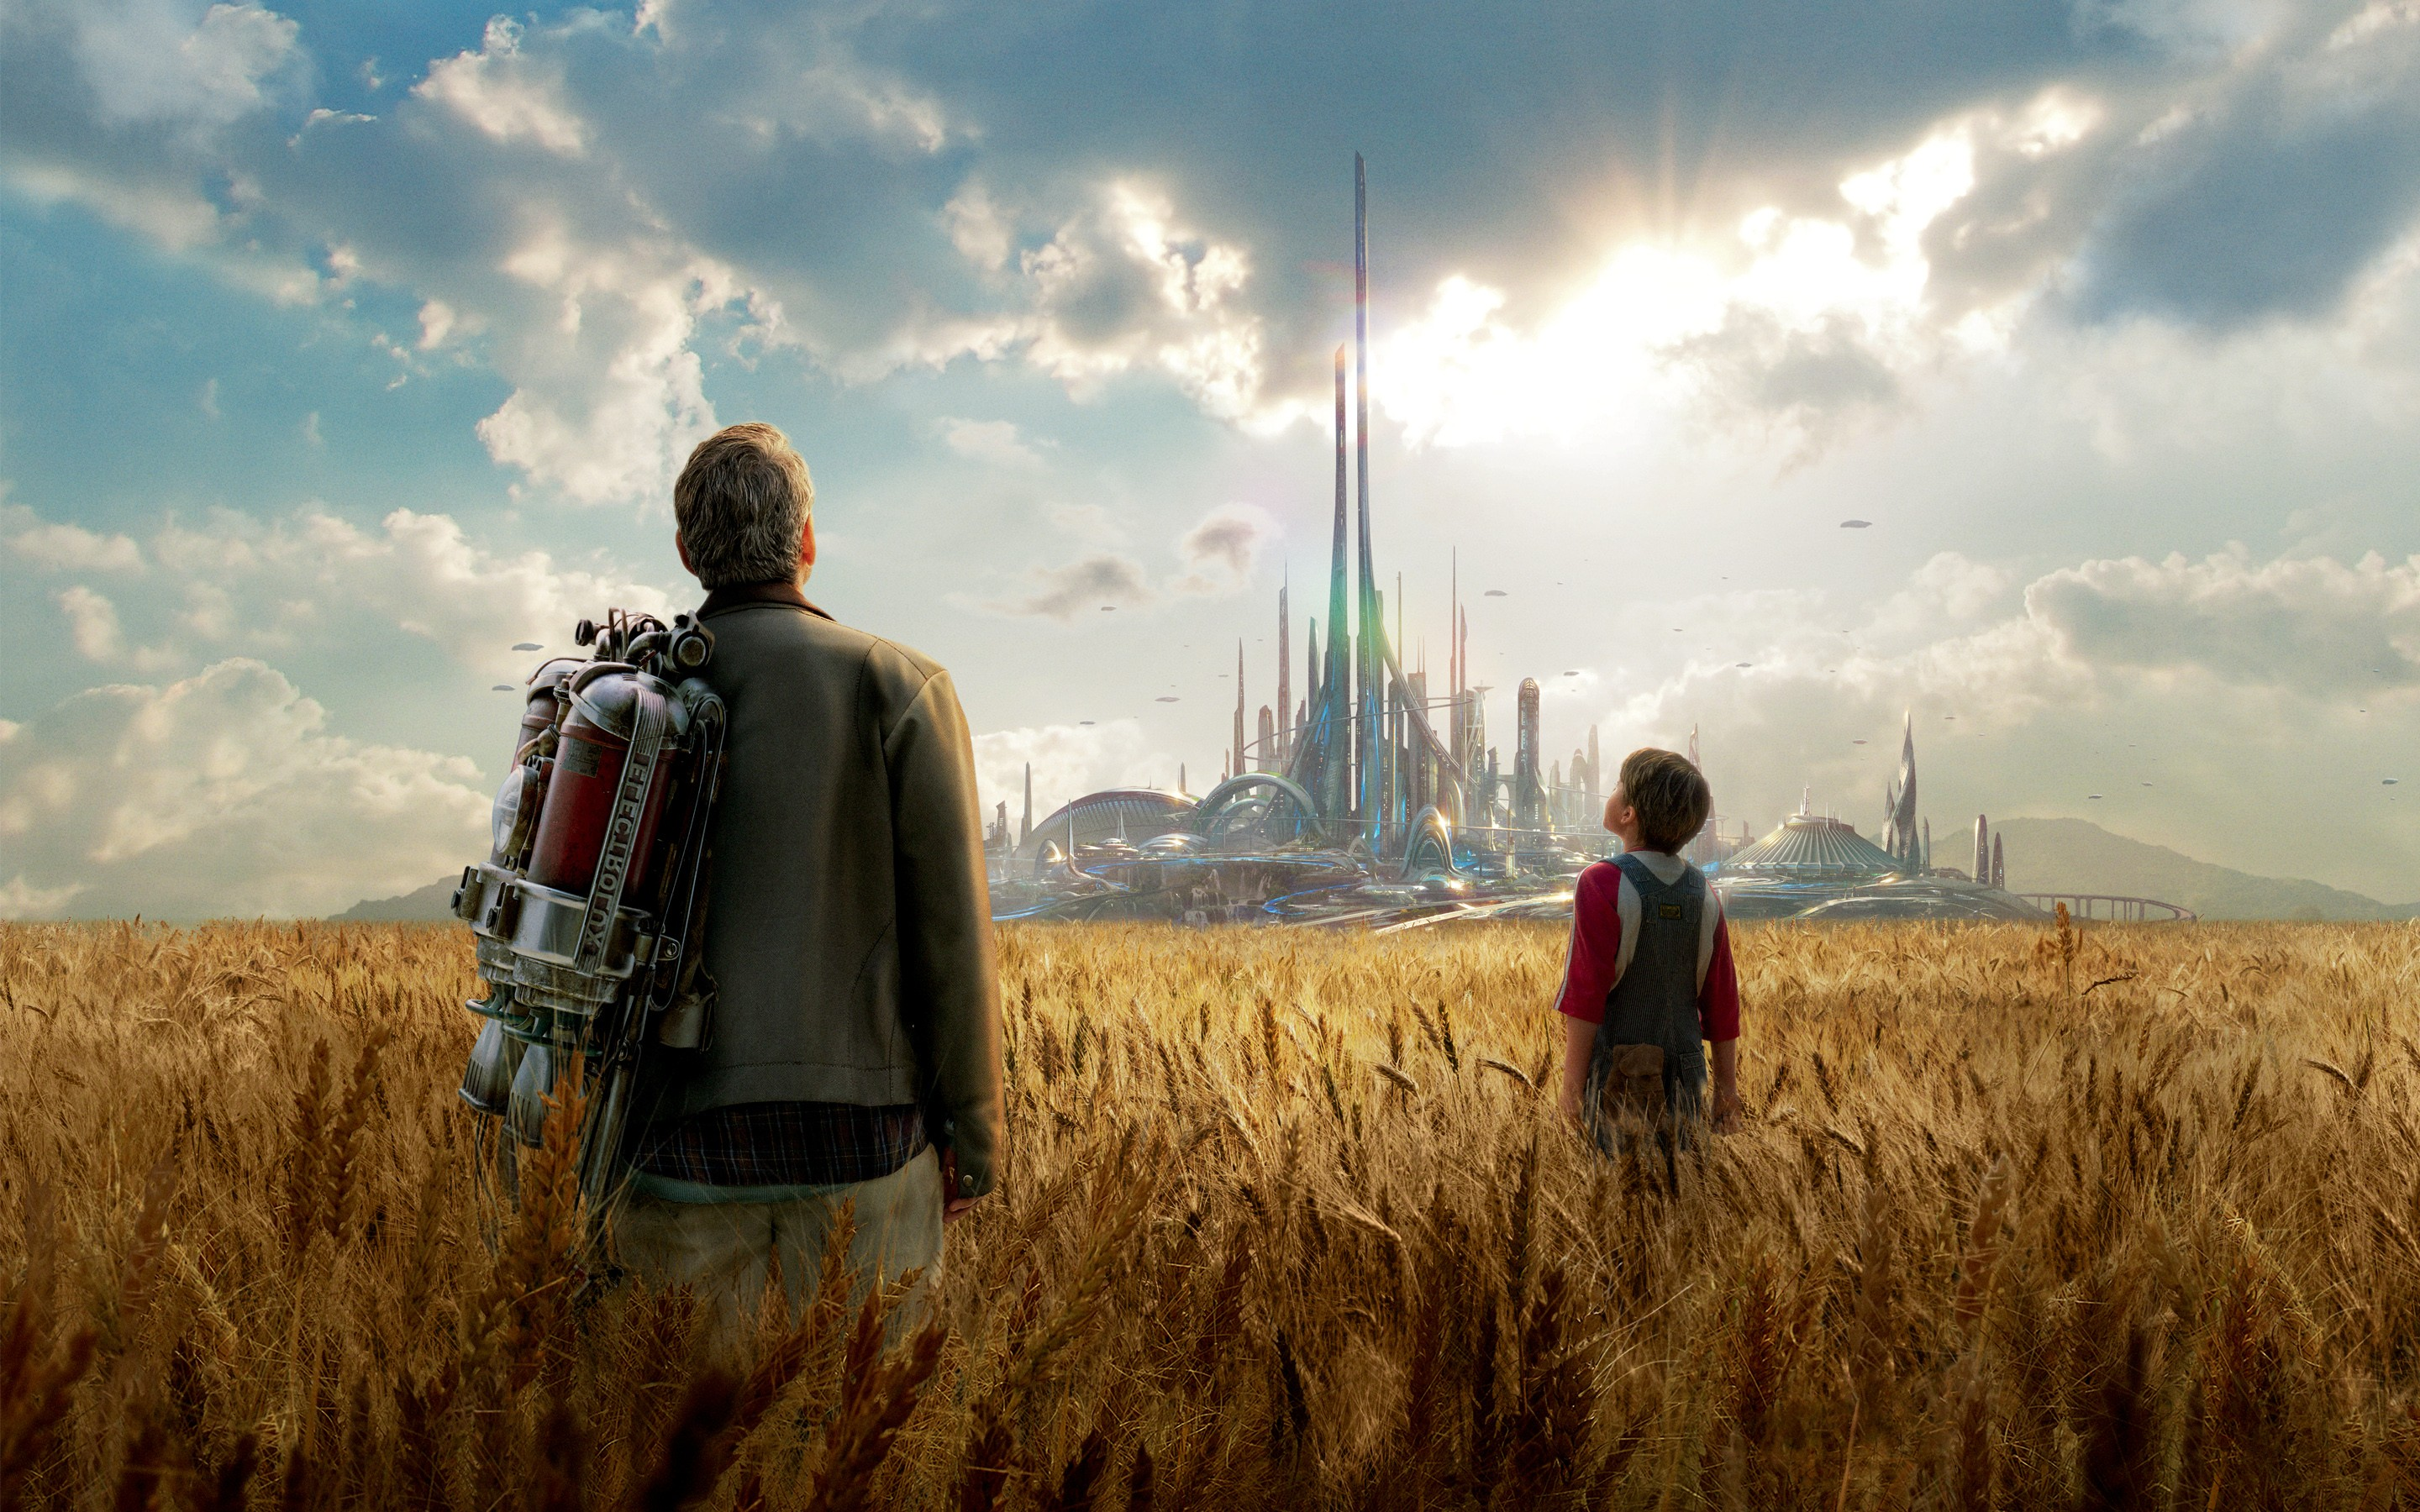 1920x1080 Tomorrowland Movie 3 Laptop Full Hd 1080p Hd 4k Wallpapers